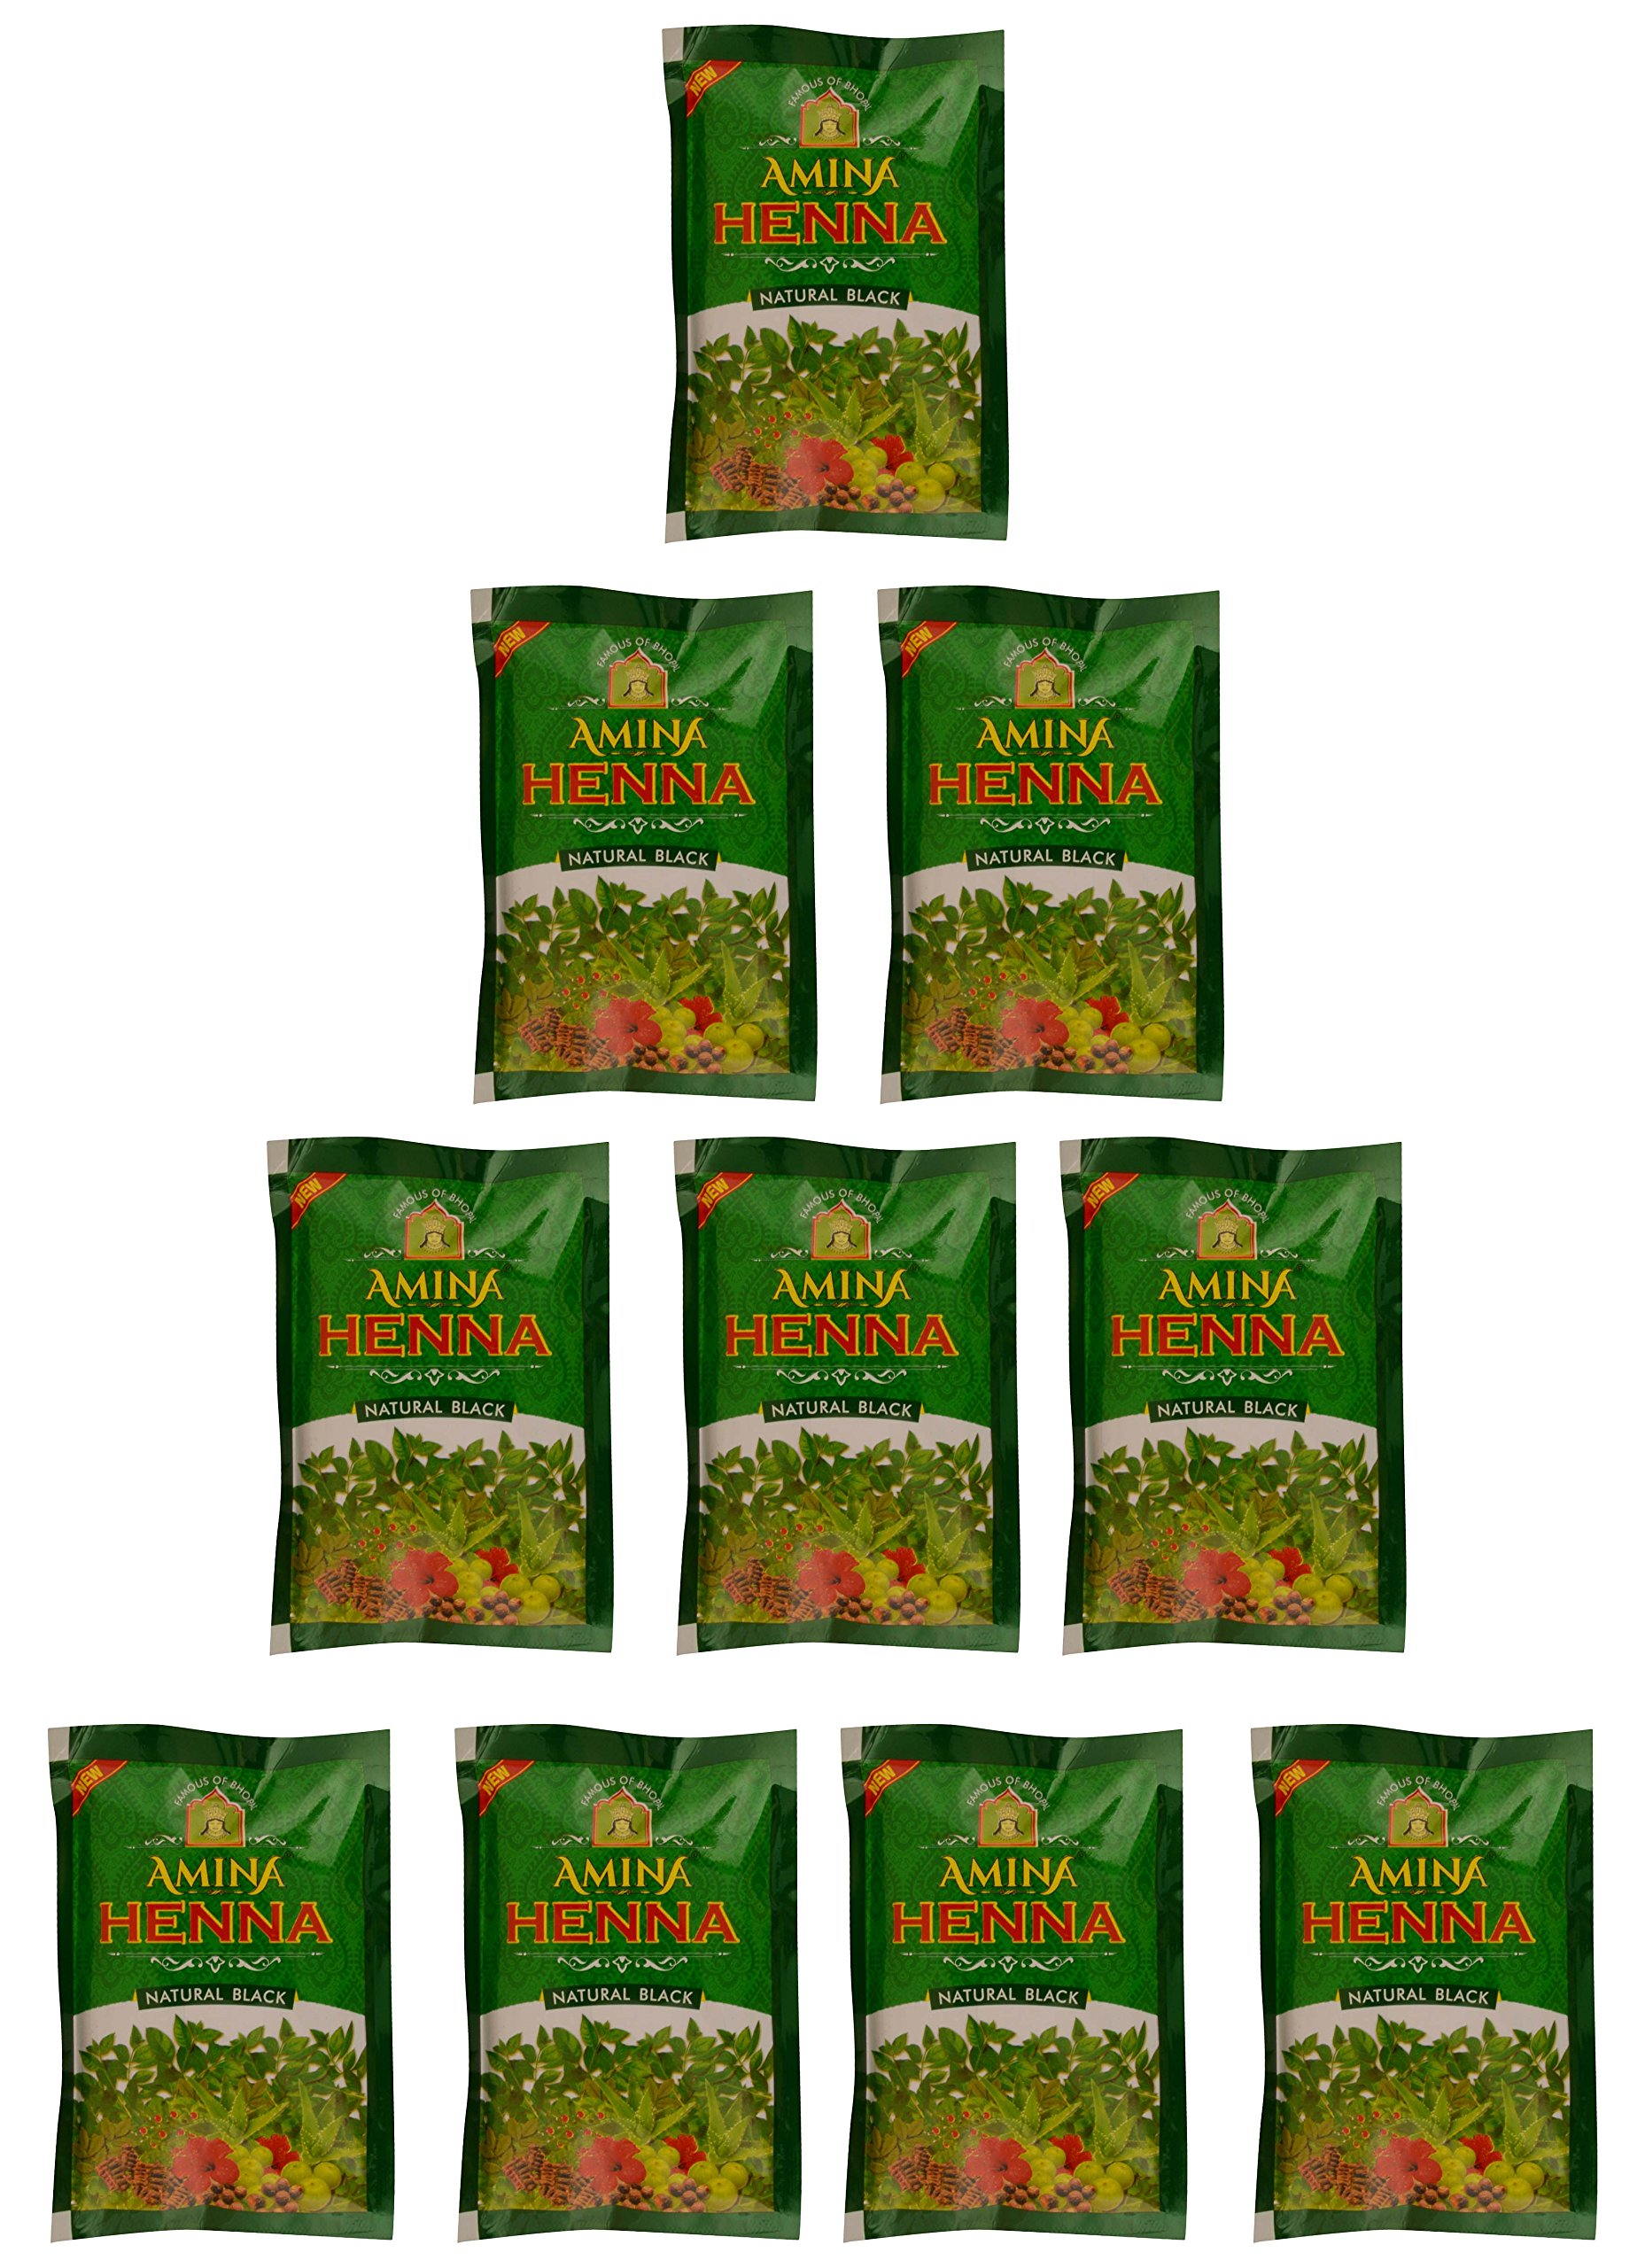 Amina Henna, Natural Black 300 g (Pack of 10) product image